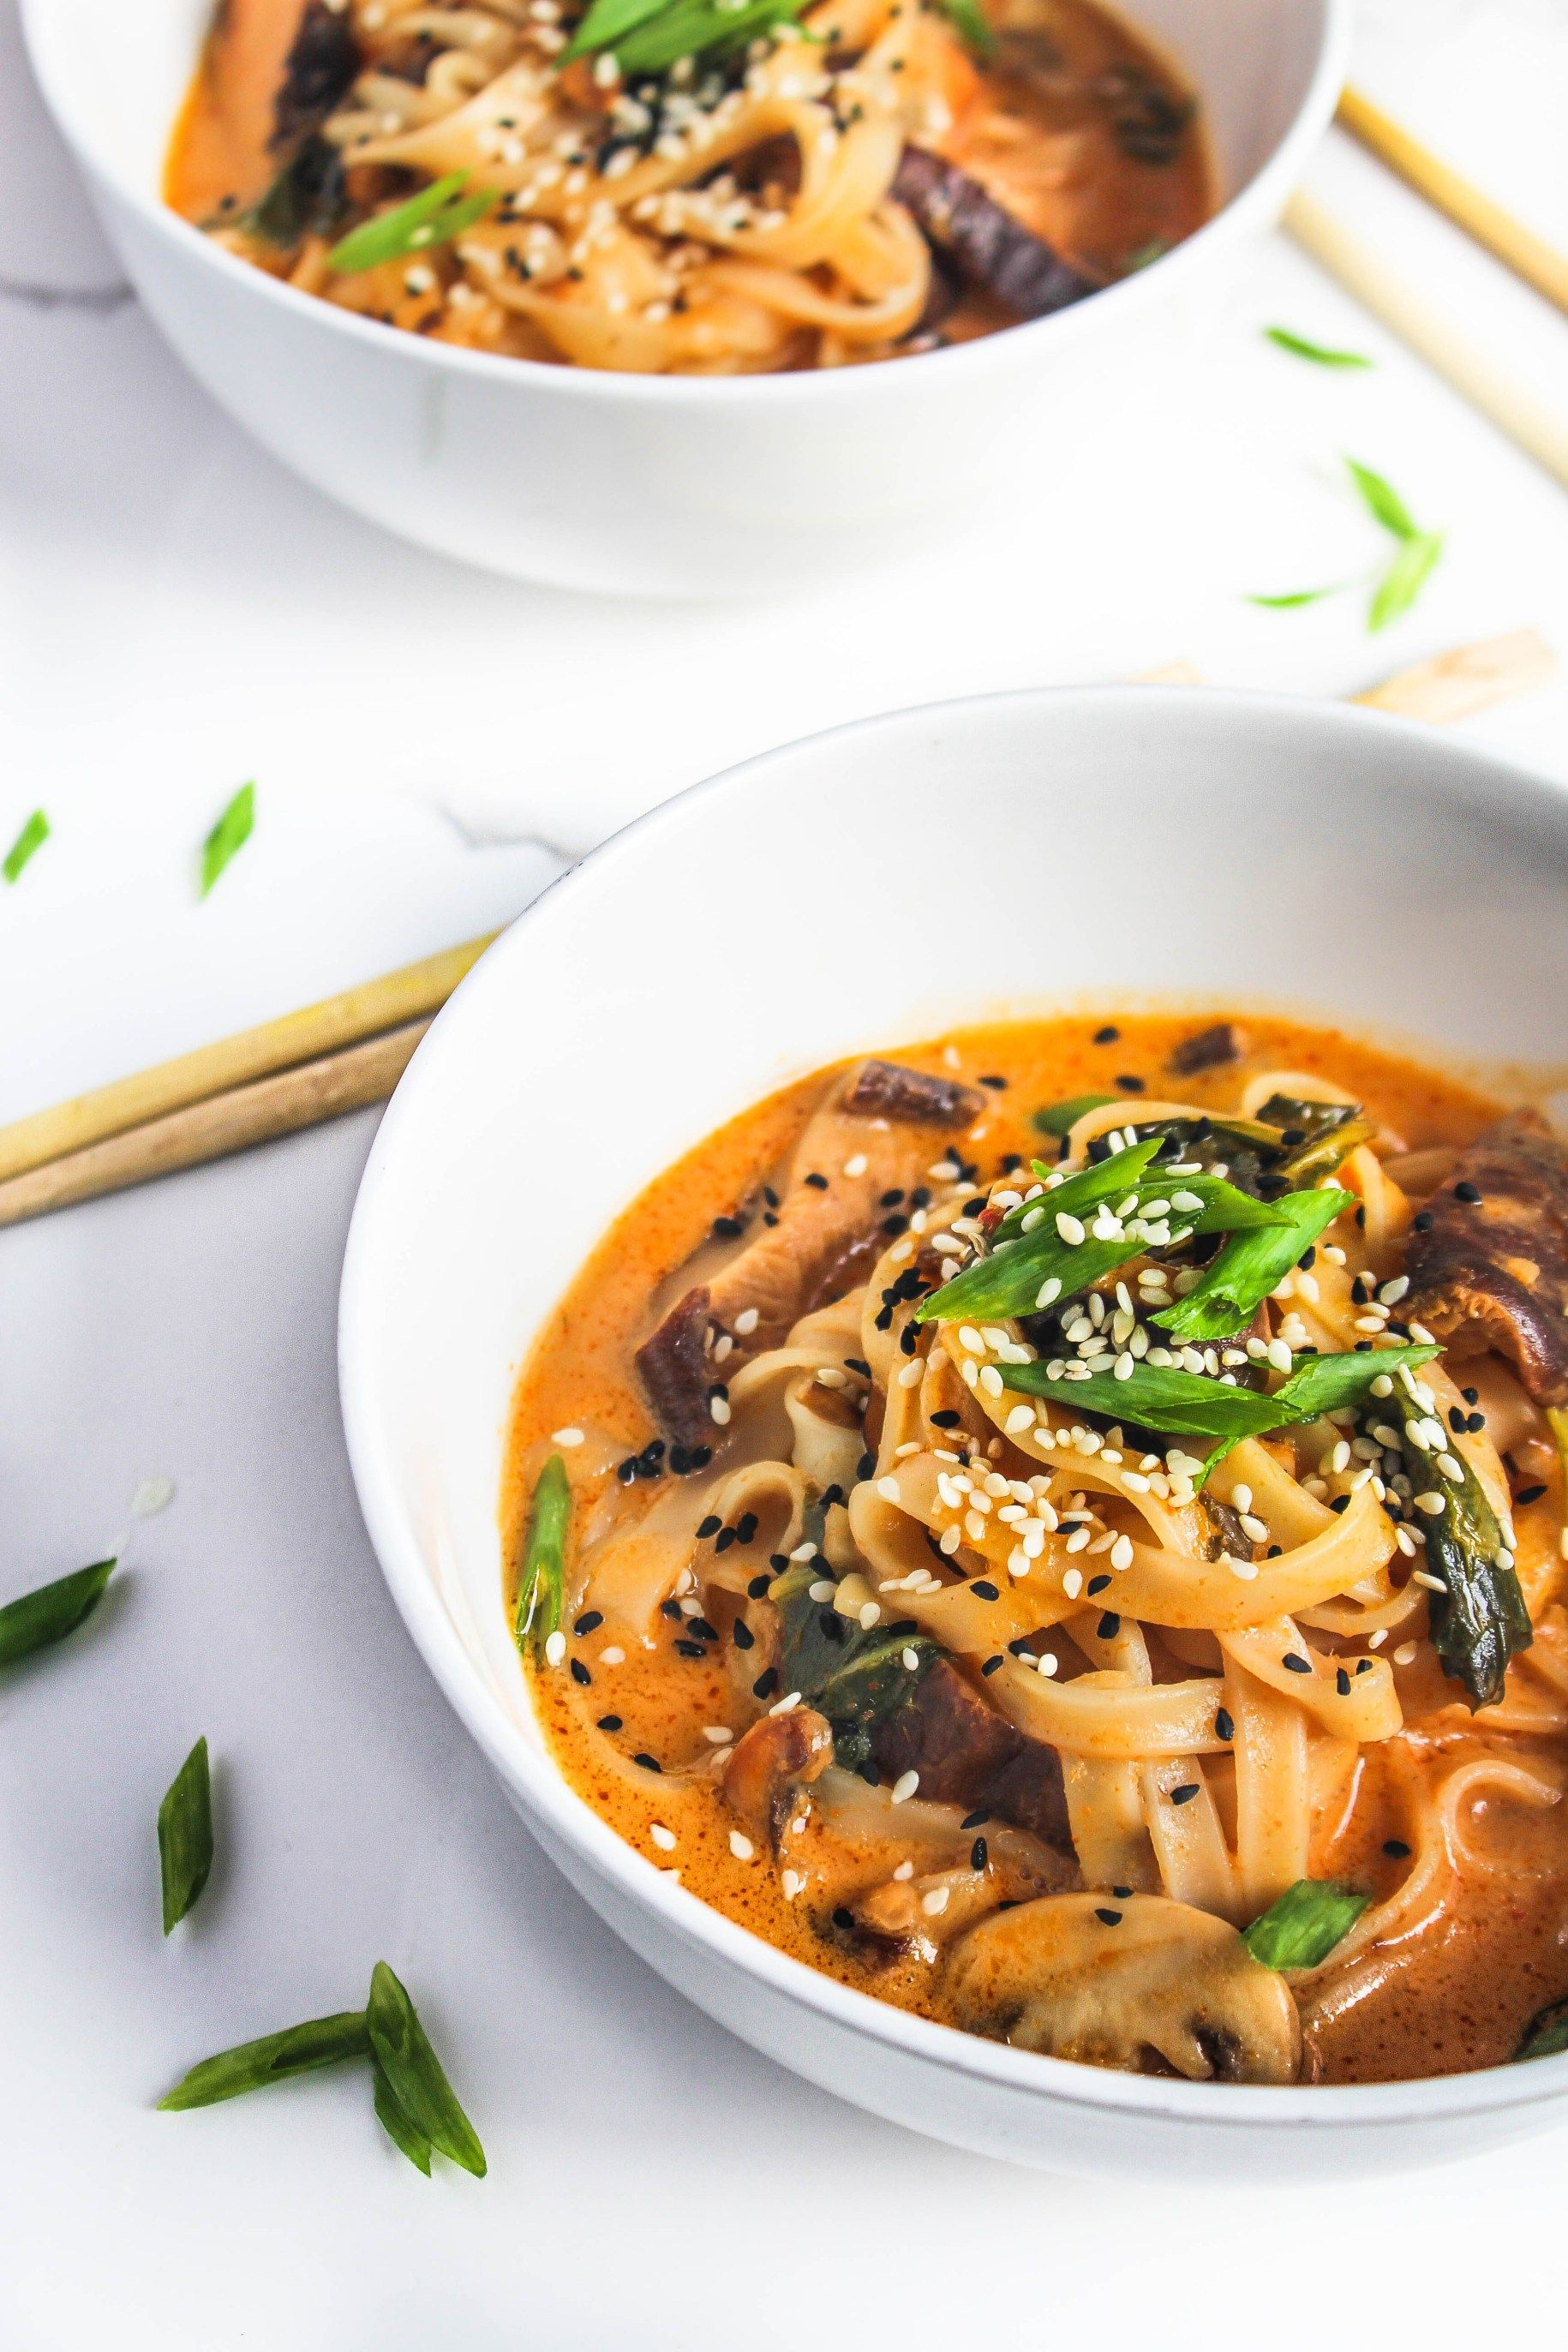 Soupy Thai Red Curry Rice Noodles The Twin Cooking Project By Sheenam Muskaan Recipe Curry Rice One Pot Vegetarian Curry